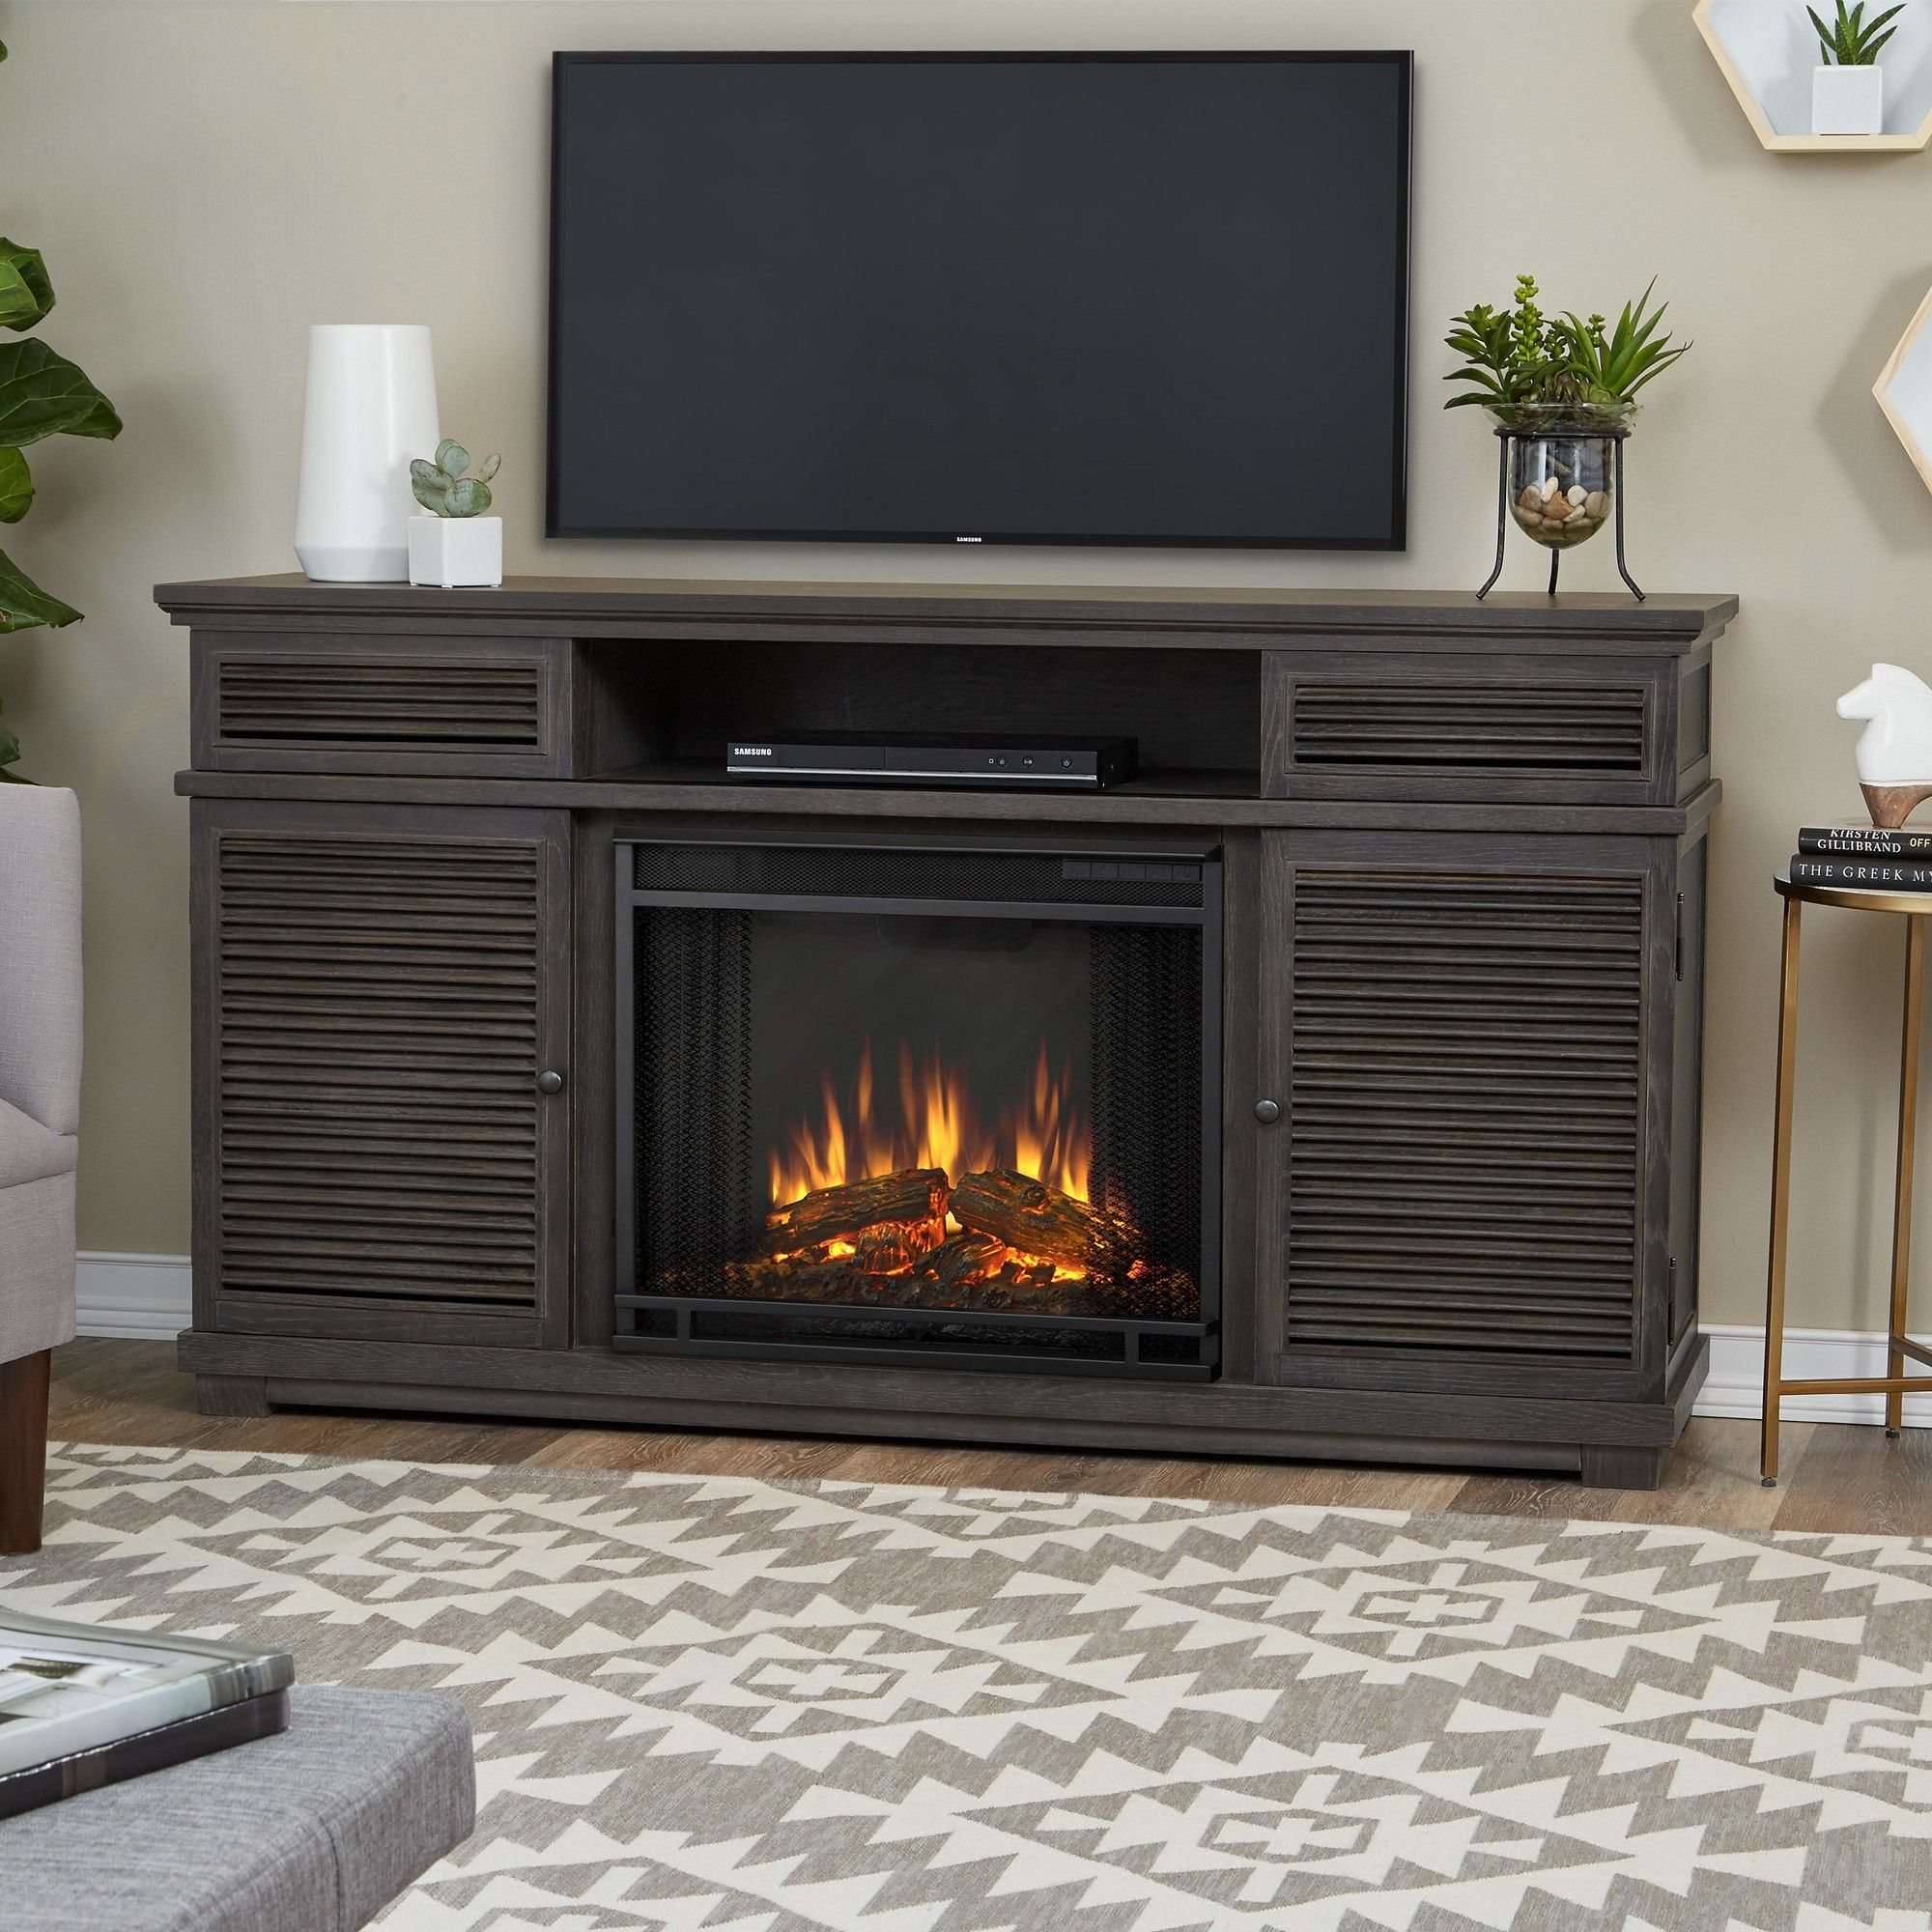 Cavallo Electric Fireplace Entertainment Center Gray Real Flame